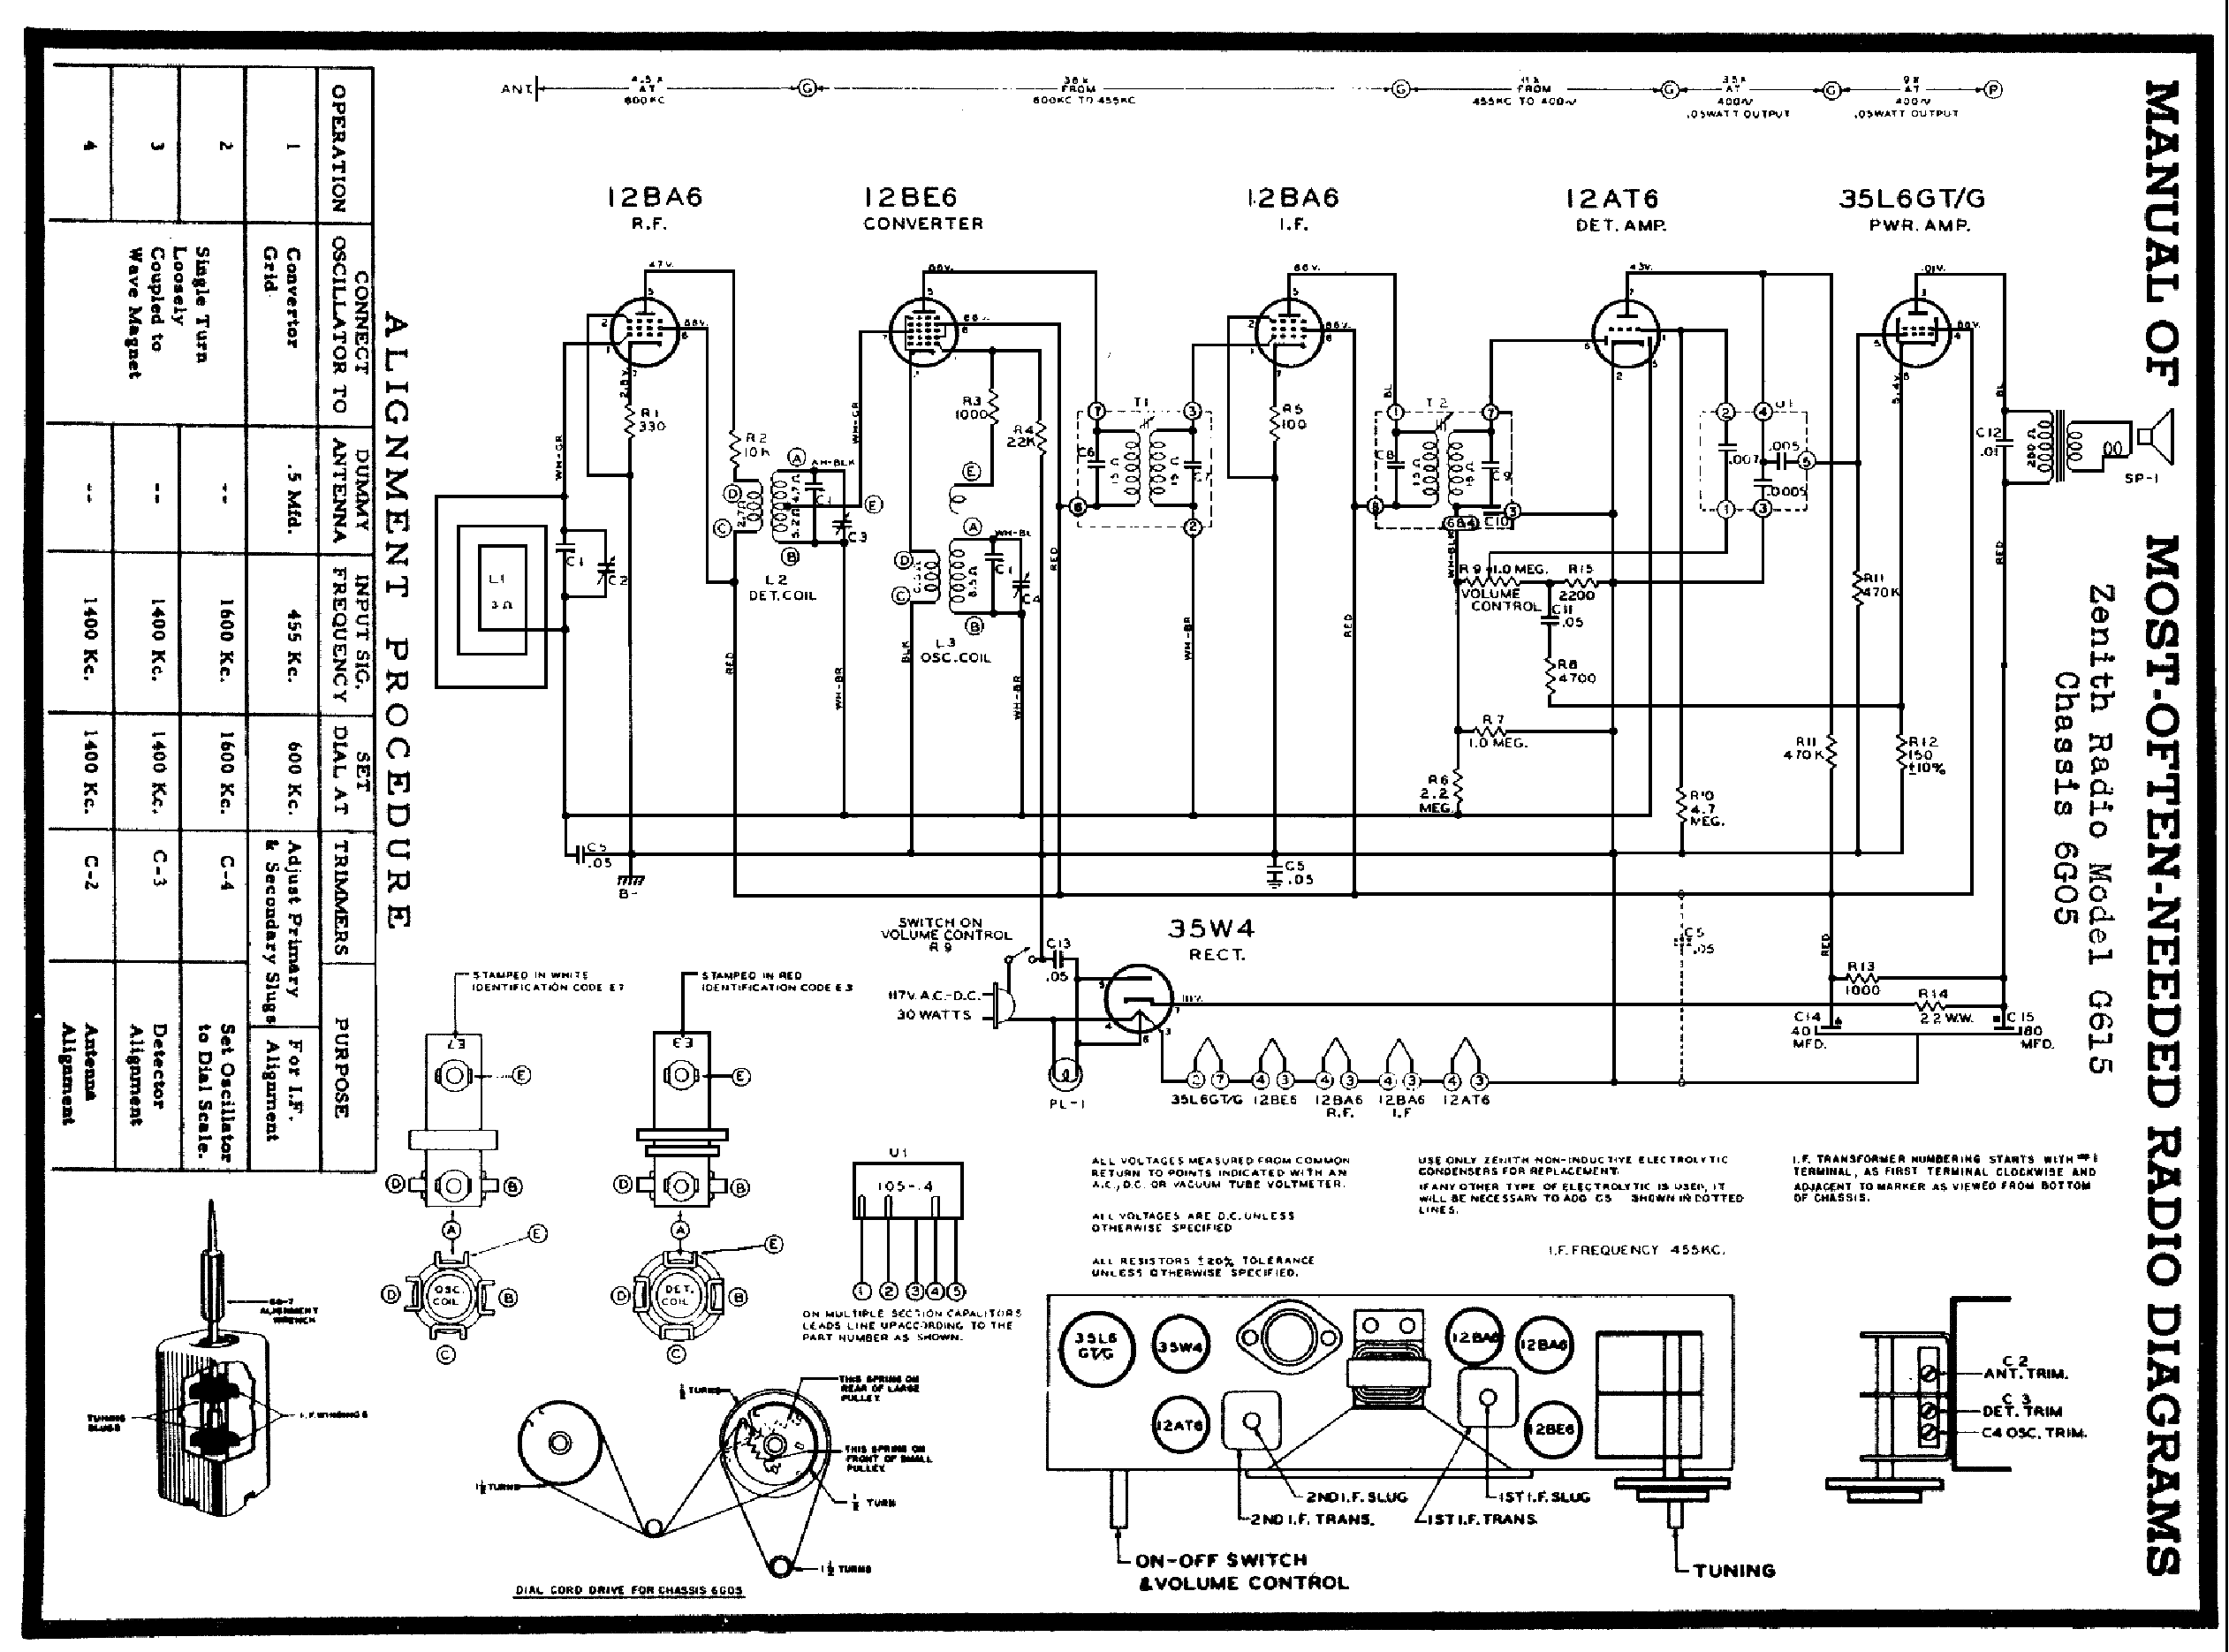 Zenith G615 Chassis 6g05 Radio Sch Service Manual Download